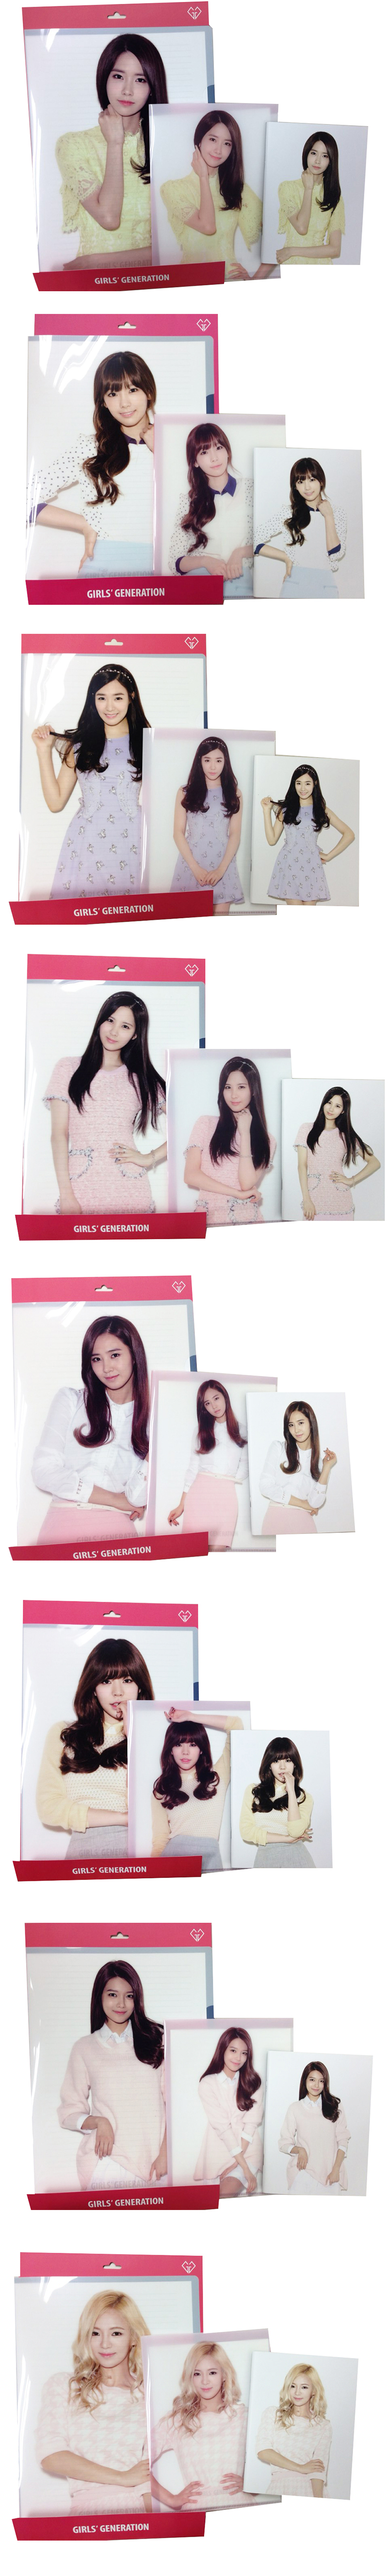 SNSD Stationary Set